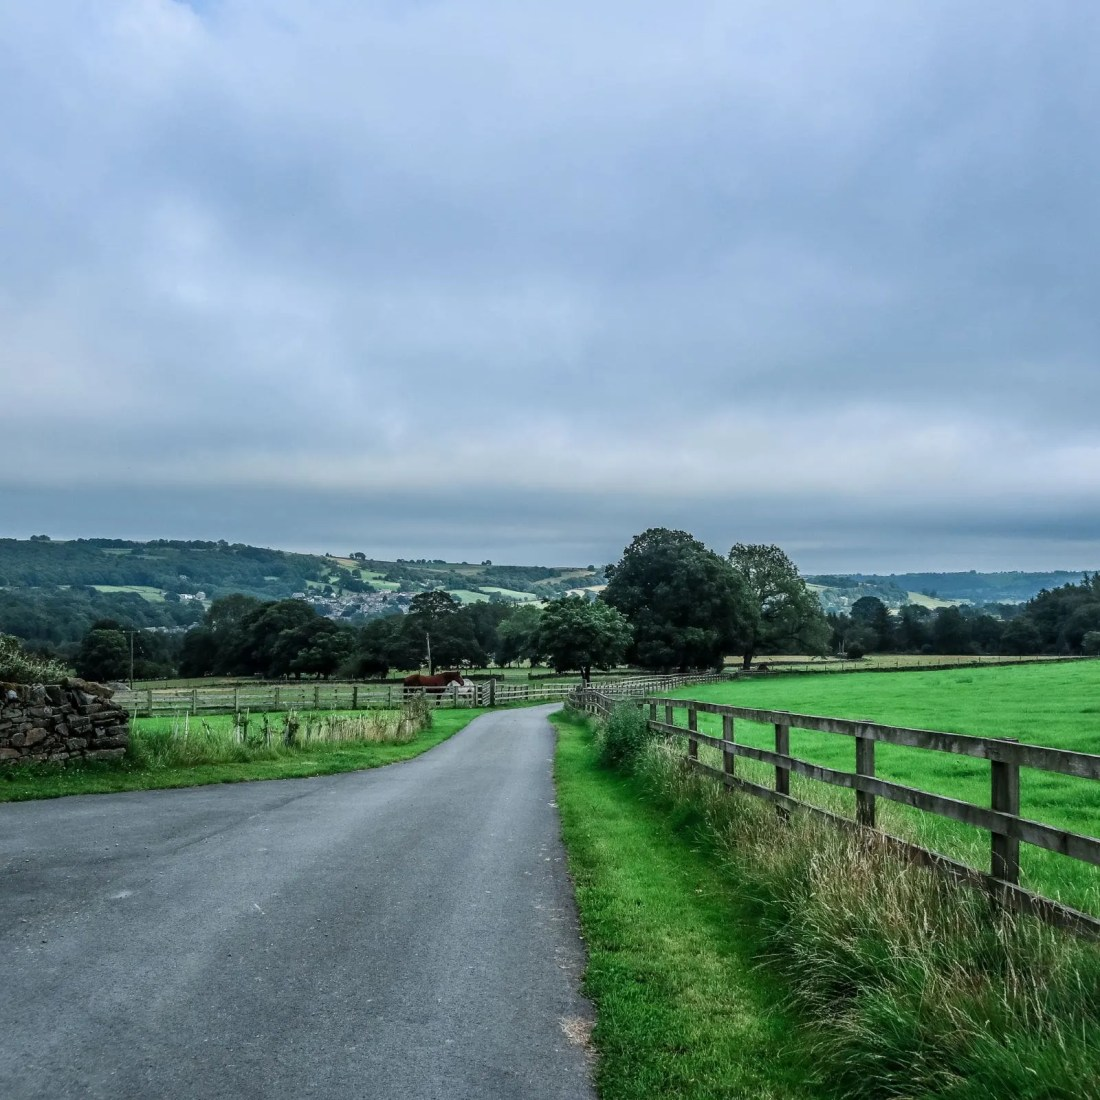 View of Nidderdale after leaving the Whittaker's gin distillery tour